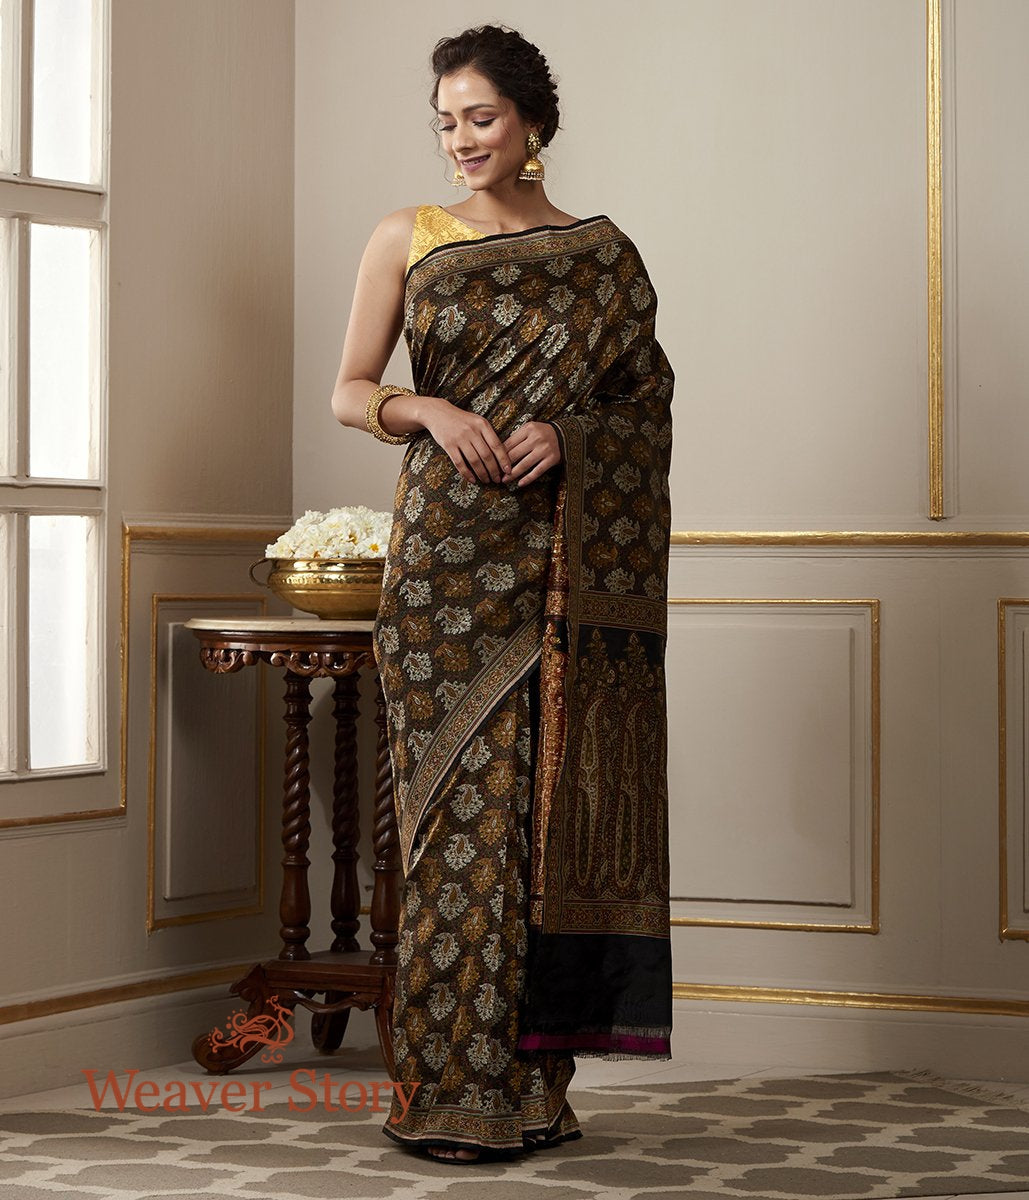 Handwoven Black and Beige Jamawar Tanchoi Saree